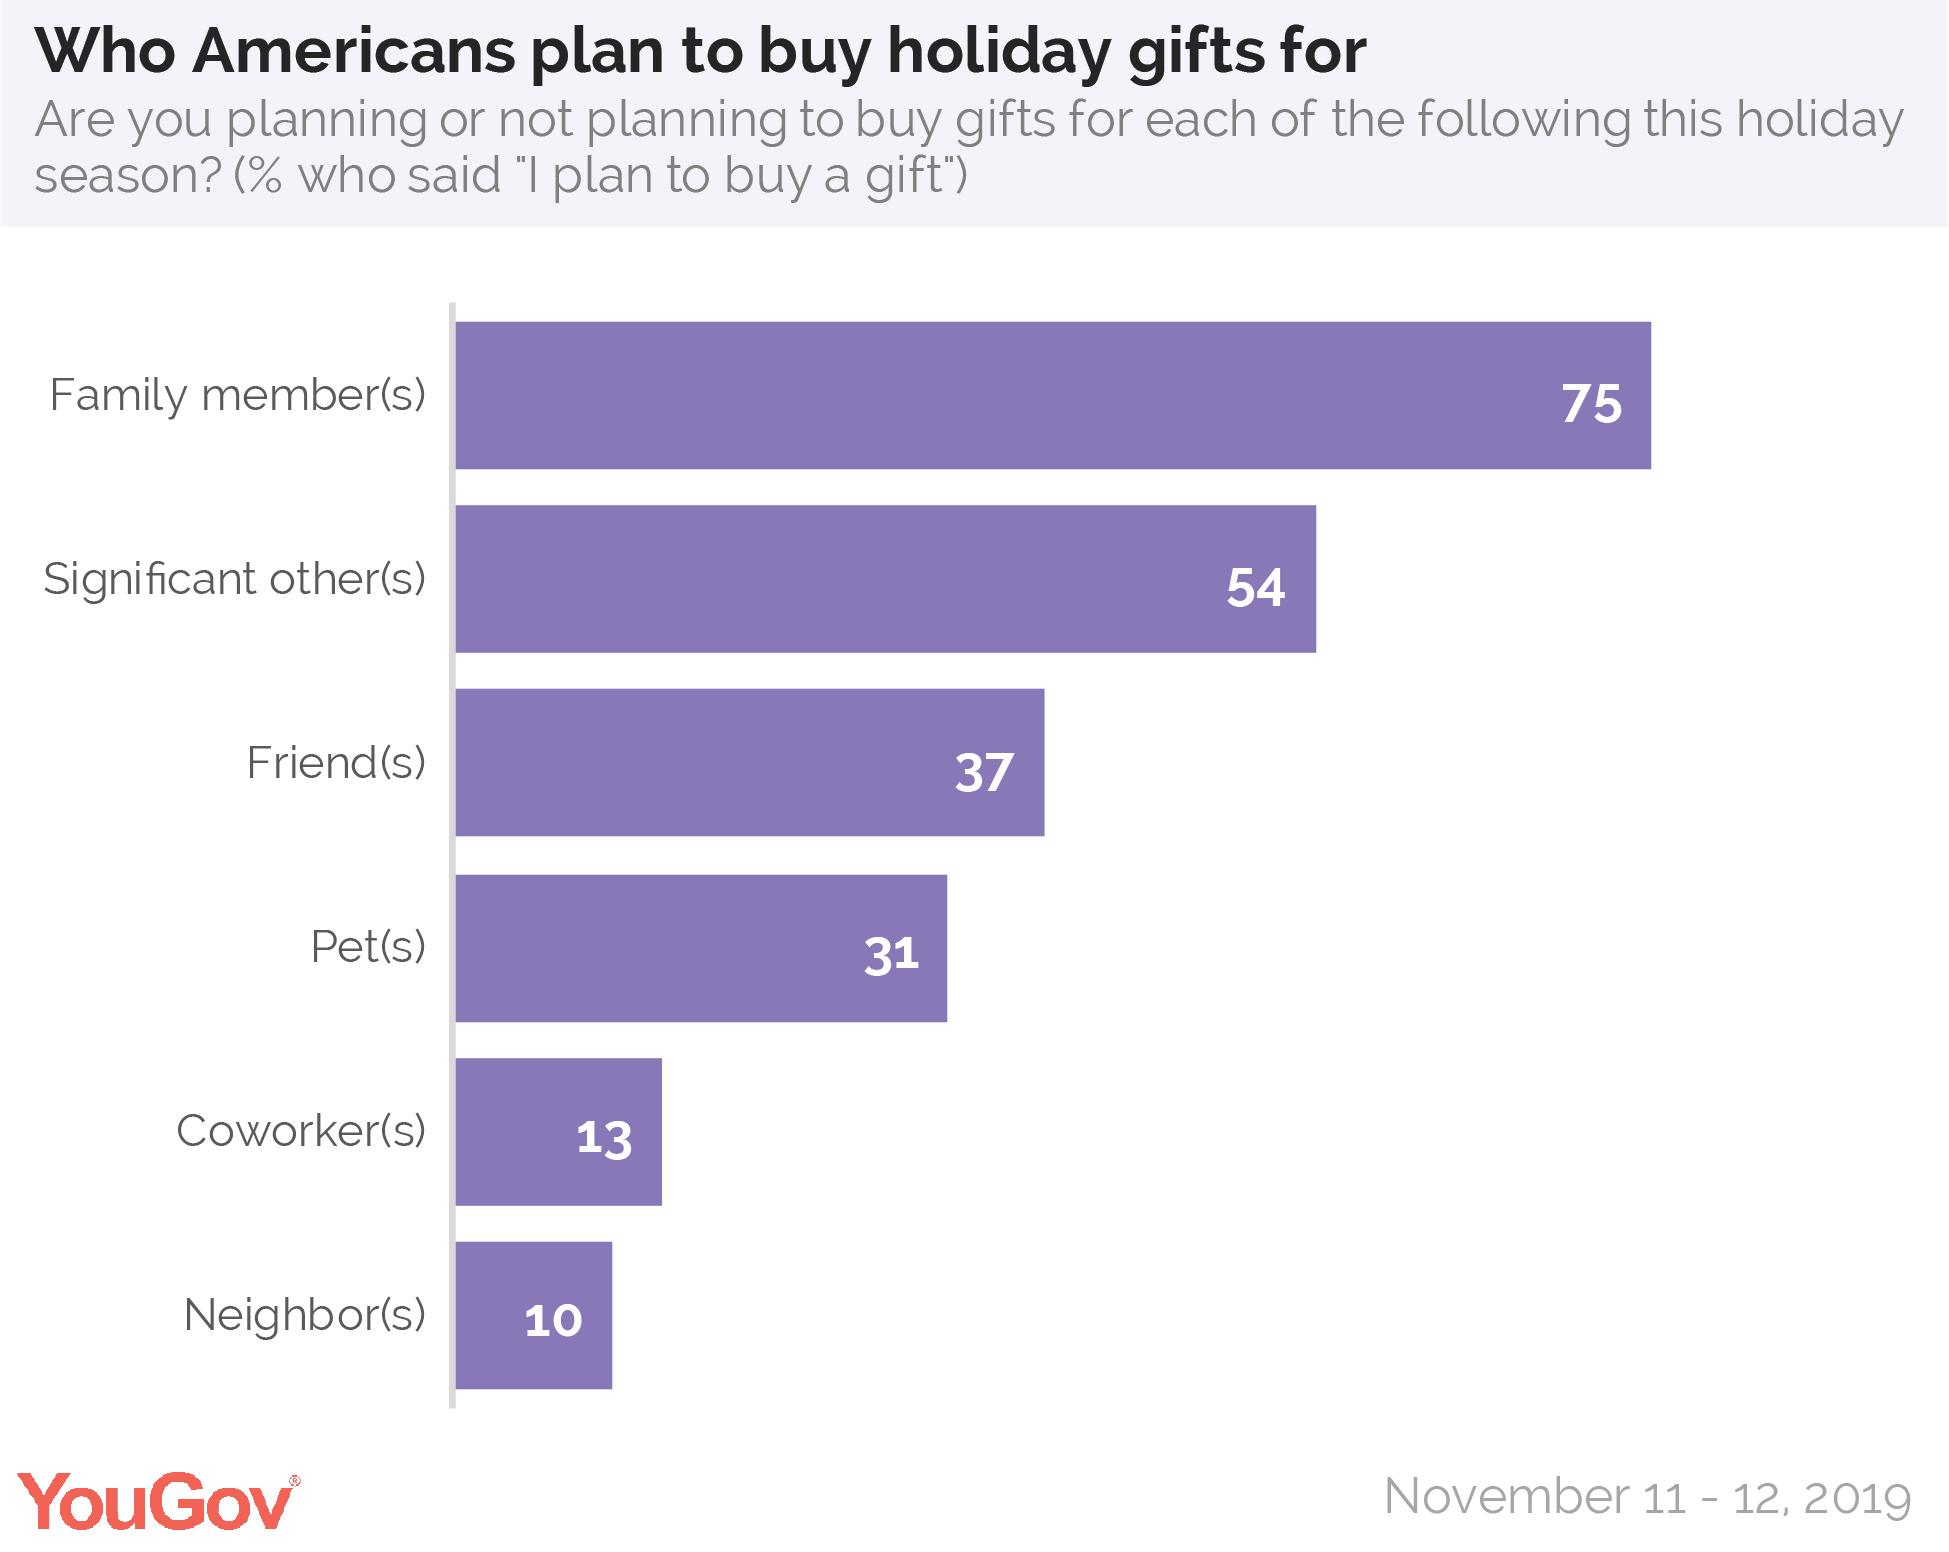 Who Americans plan to buy holiday gifts for